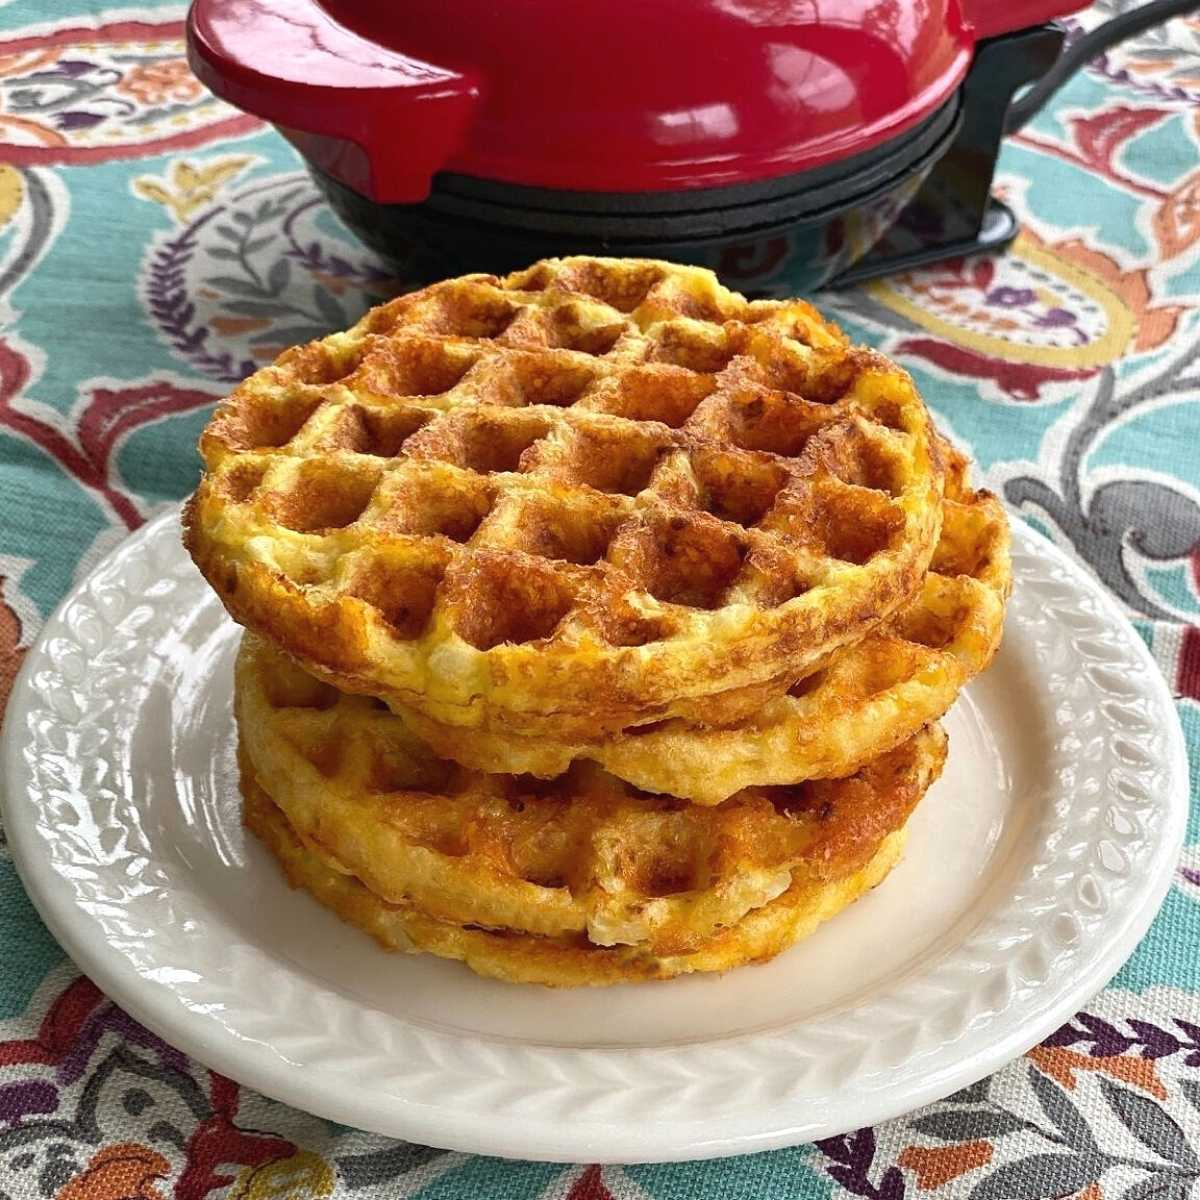 Cauliflower waffles stacked on a plate in front of waffle maker.